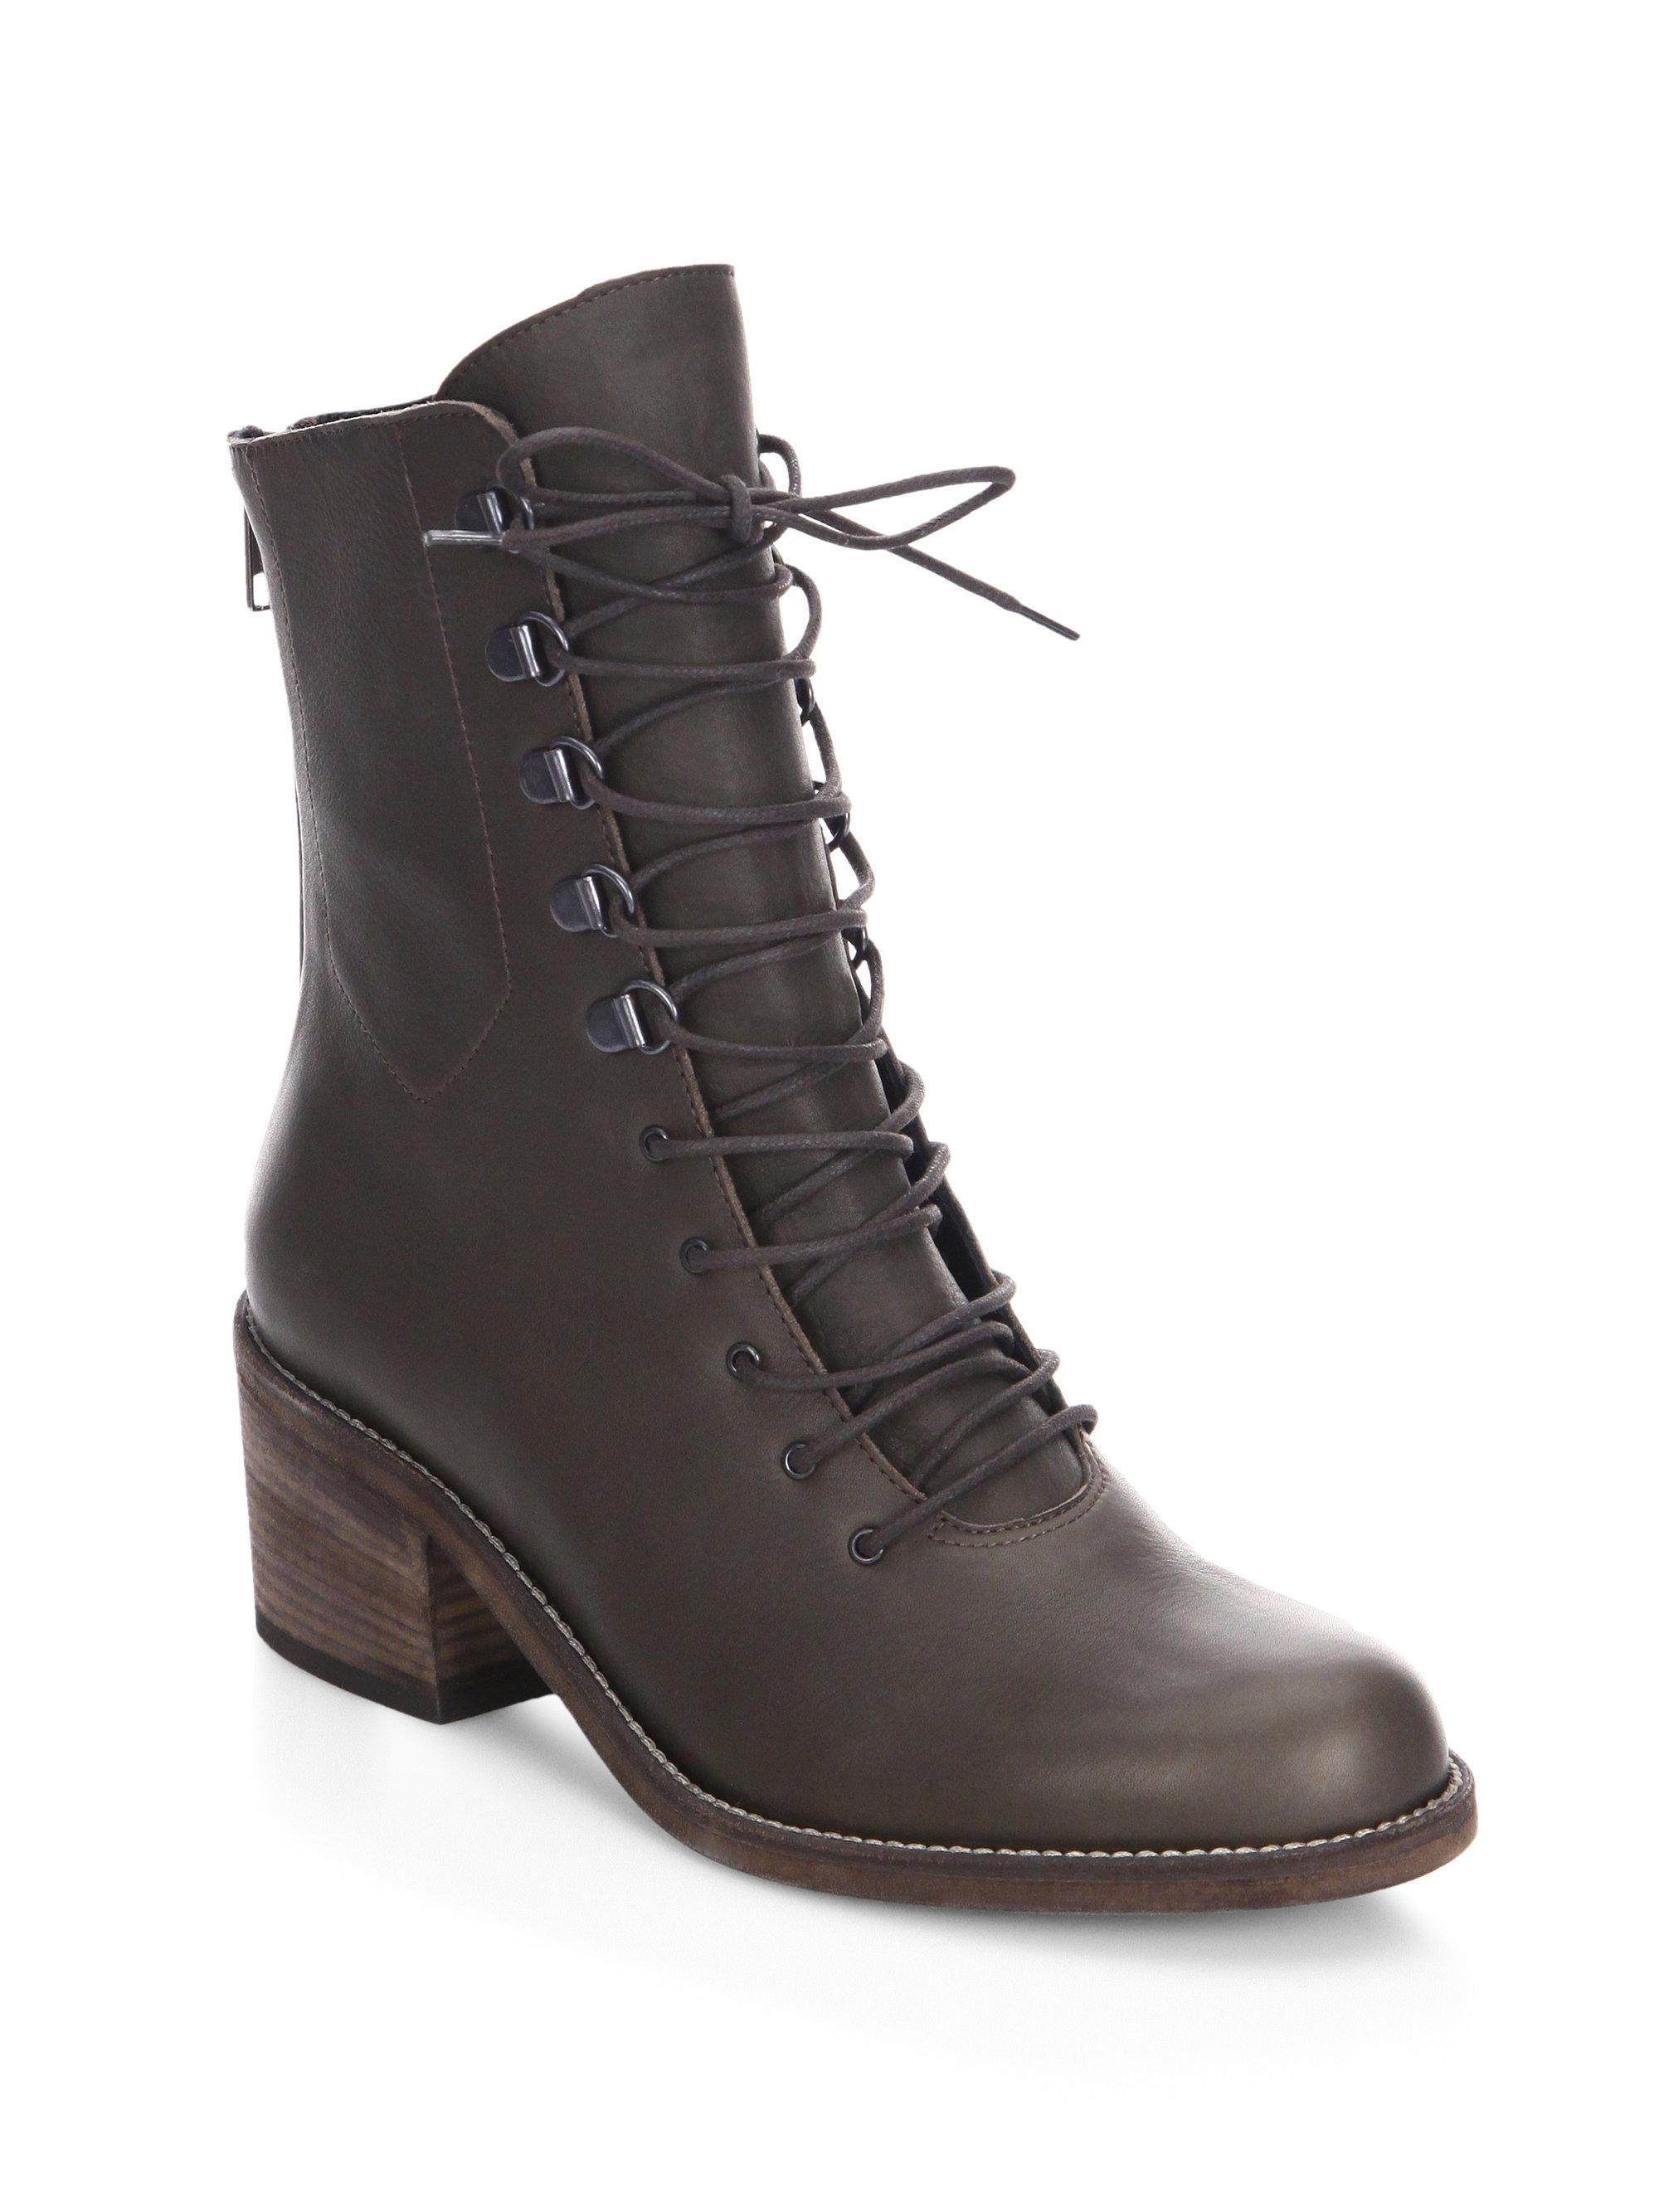 where to buy LD Tuttle Leather Ankle Boots cheap sale 100% original gA4AW